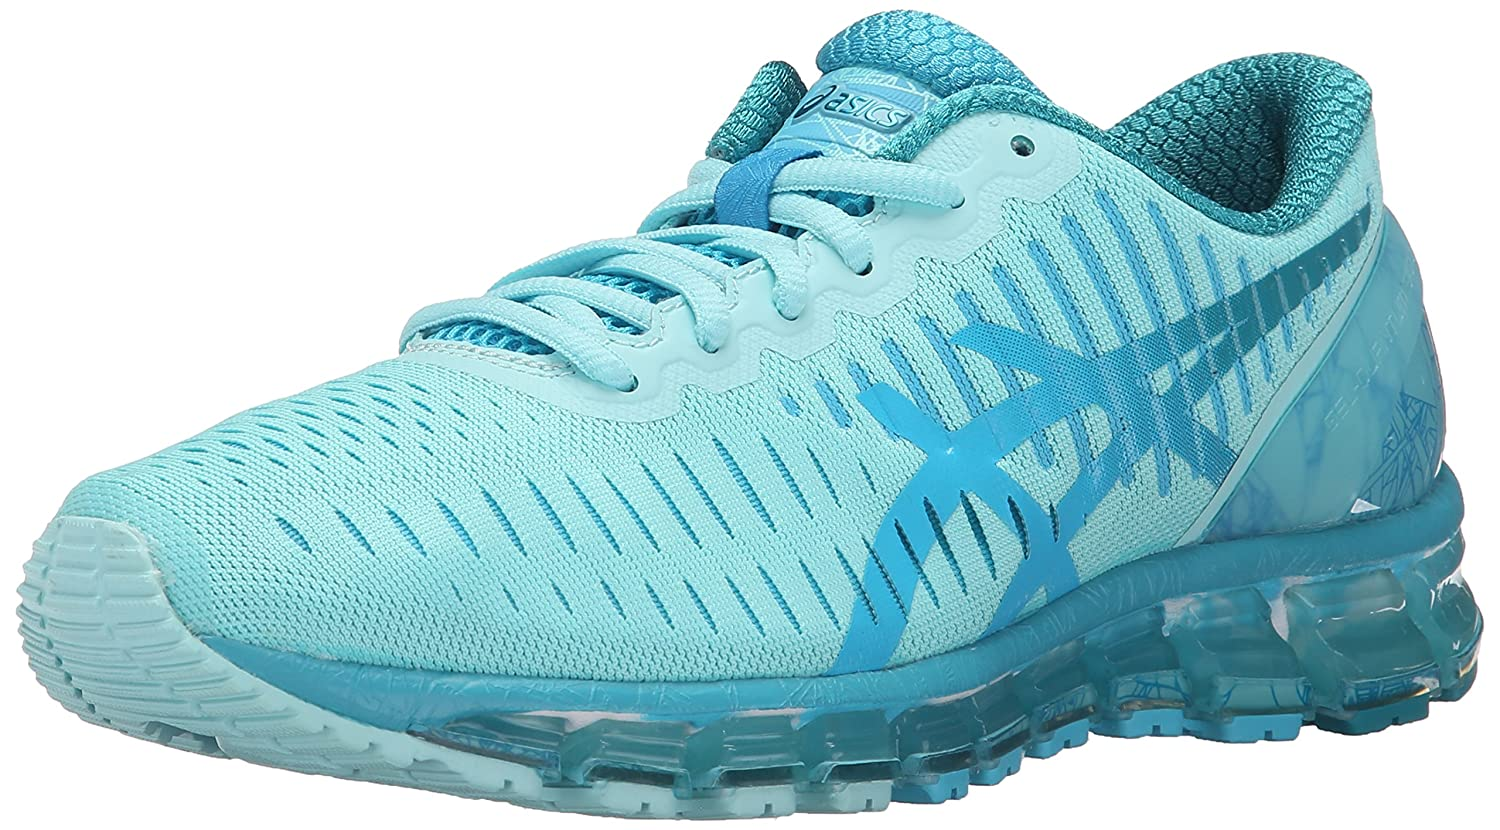 ASICS Women's Gel Quantum 360 Running Shoe B00ZAU7QXY 7 B(M) US|Aqua Splash/Turquoise/Tile Blue